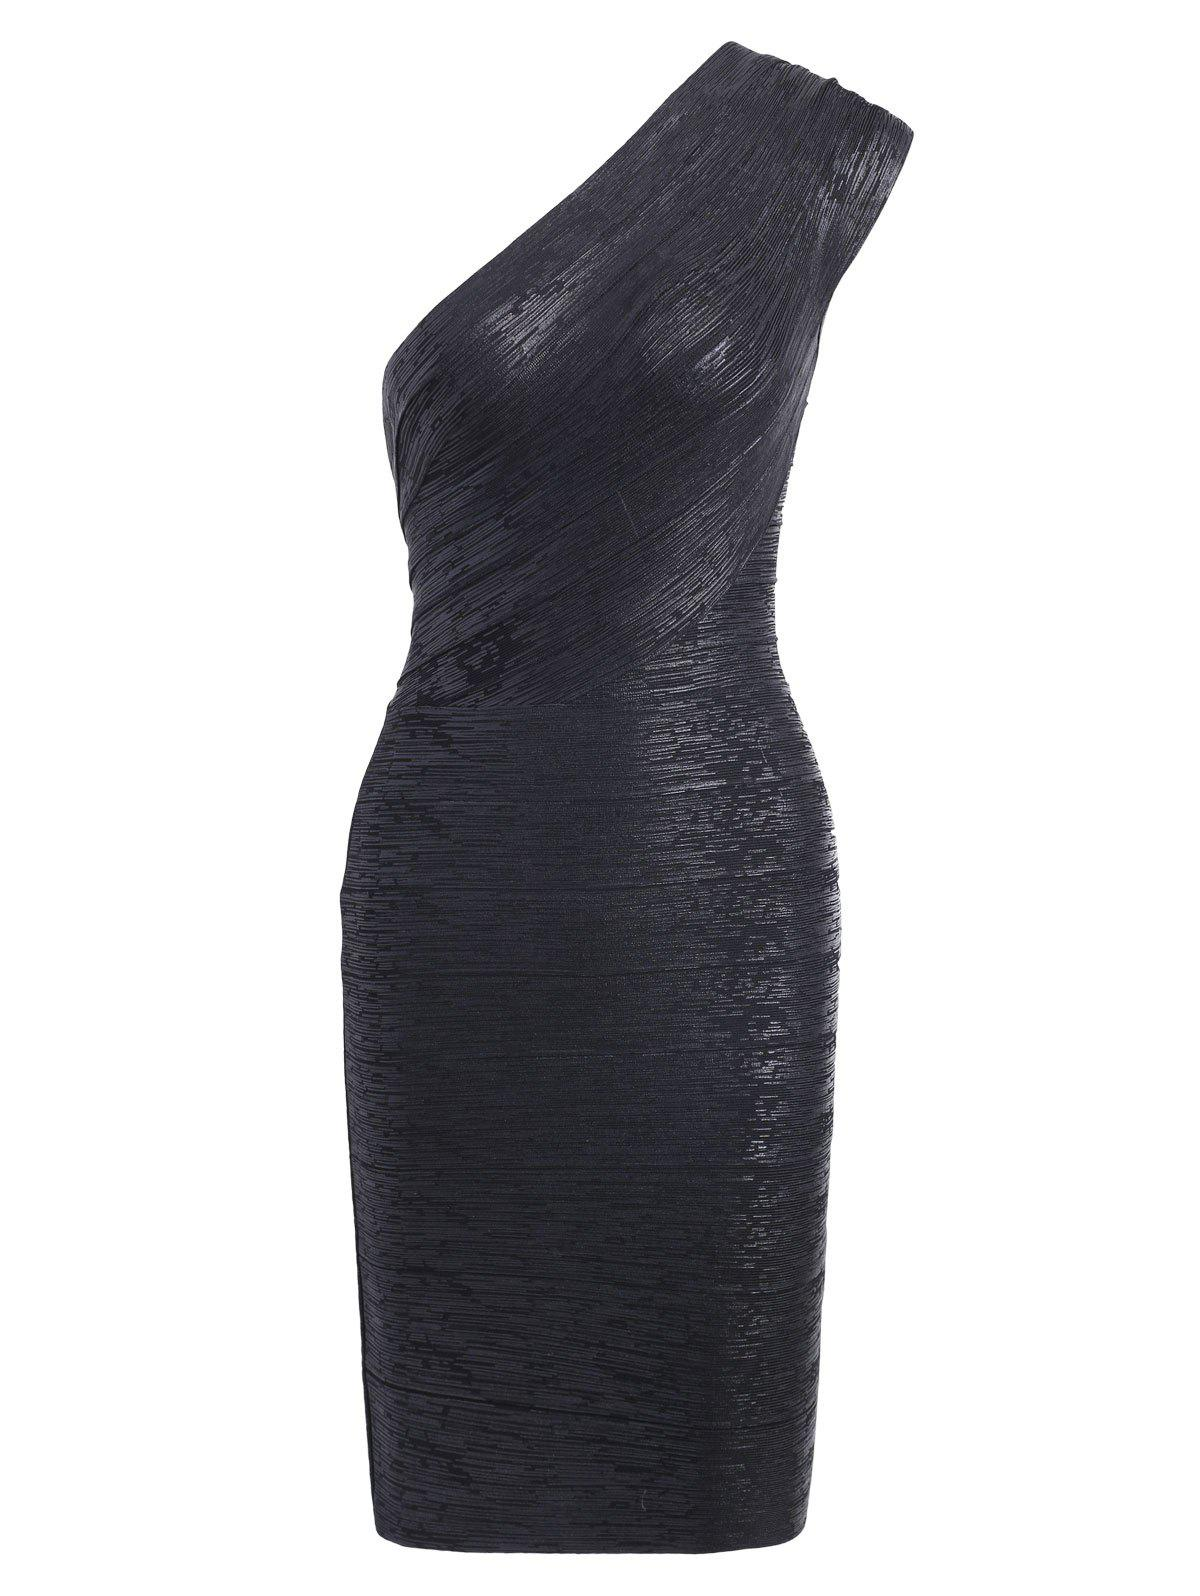 Bronzing One Shoulder Bodycon Bandage Dress - BLACK S